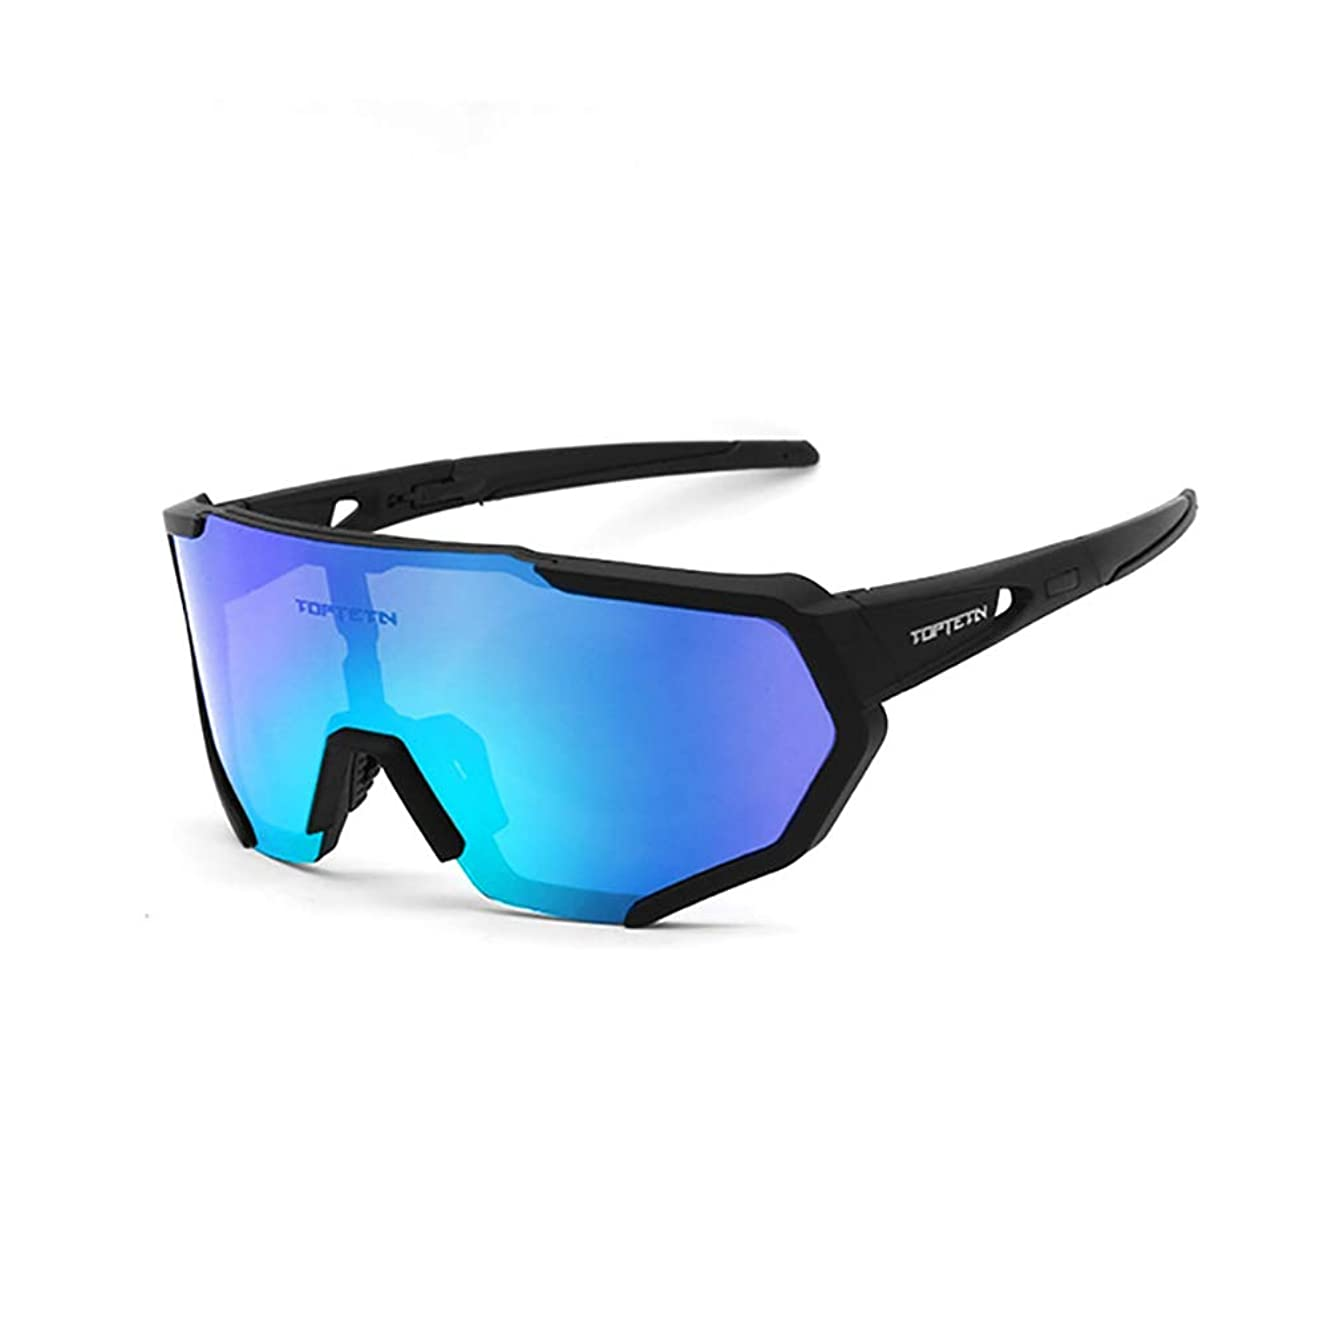 TOPTETN Polarized Sports Sunglasses for Men Women Cycling Running Driving